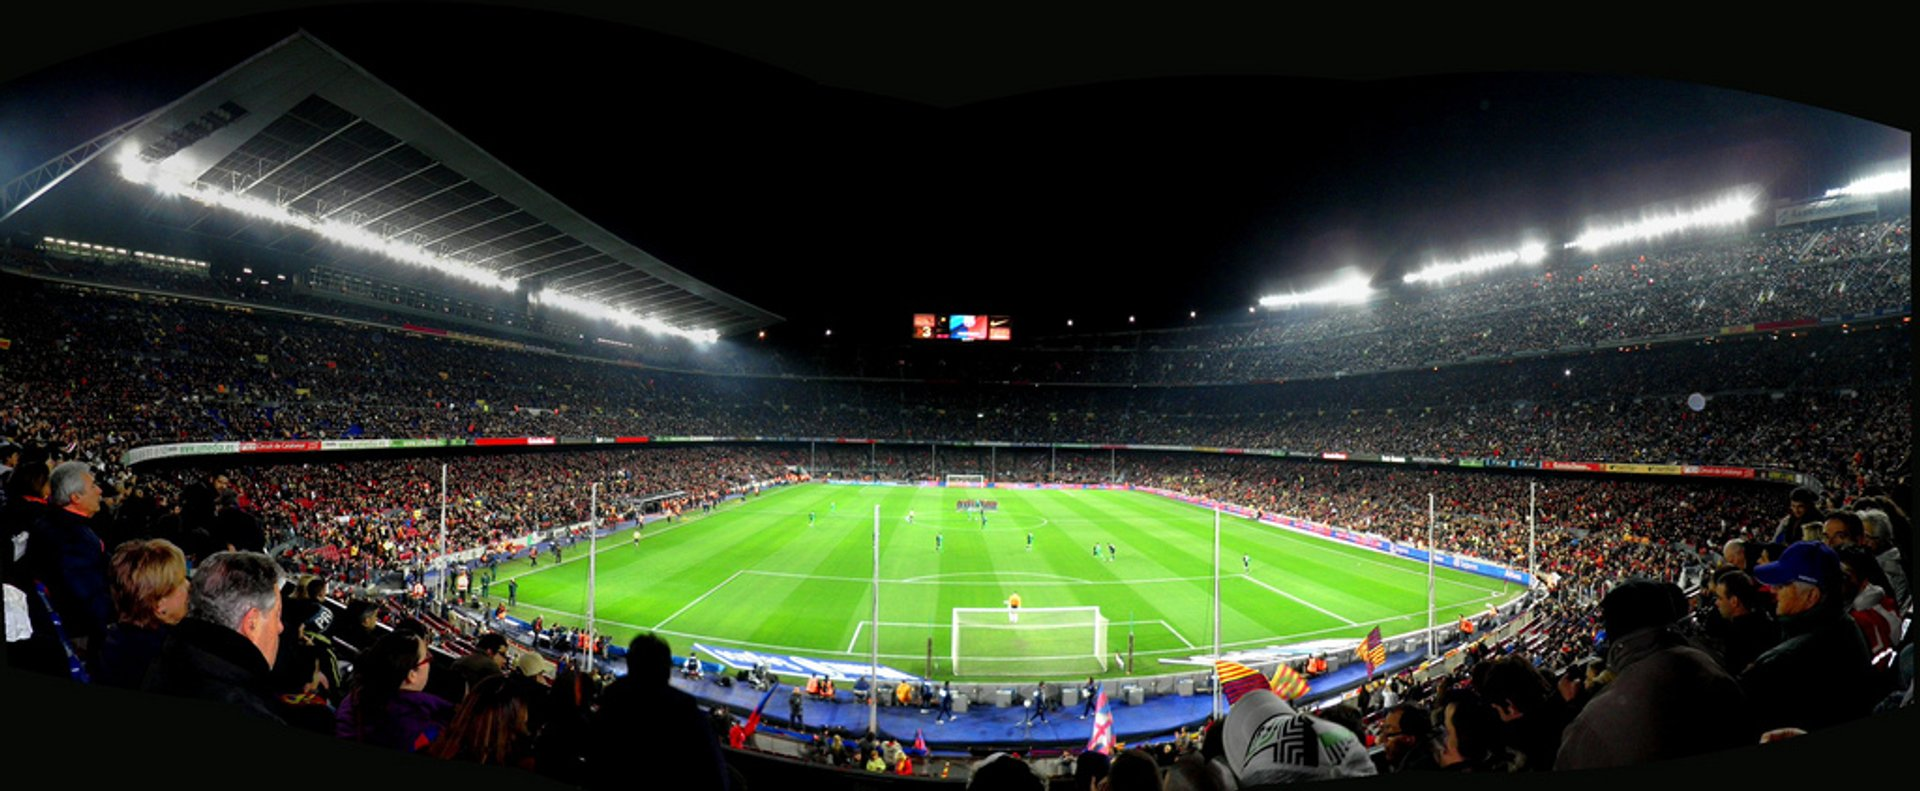 FC Barcelona and Camp Nou in Barcelona - Best Season 2020